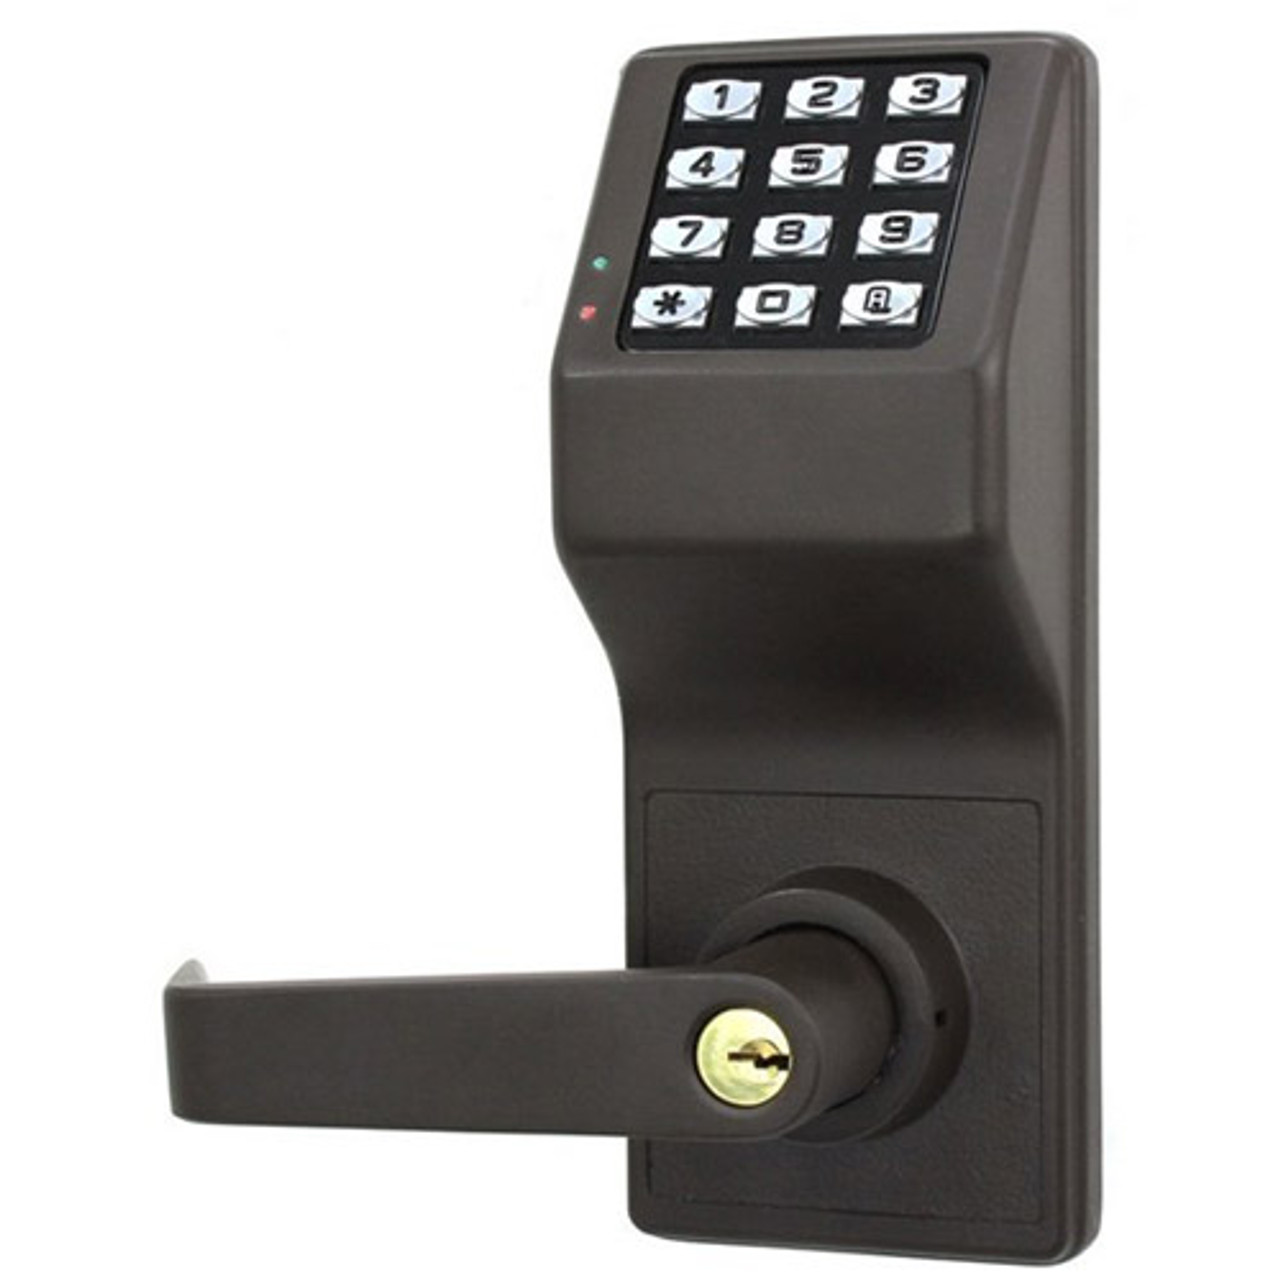 DL3000WP-US10B Alarm Lock Trilogy Electronic Digital Lock in Duronodic Finish